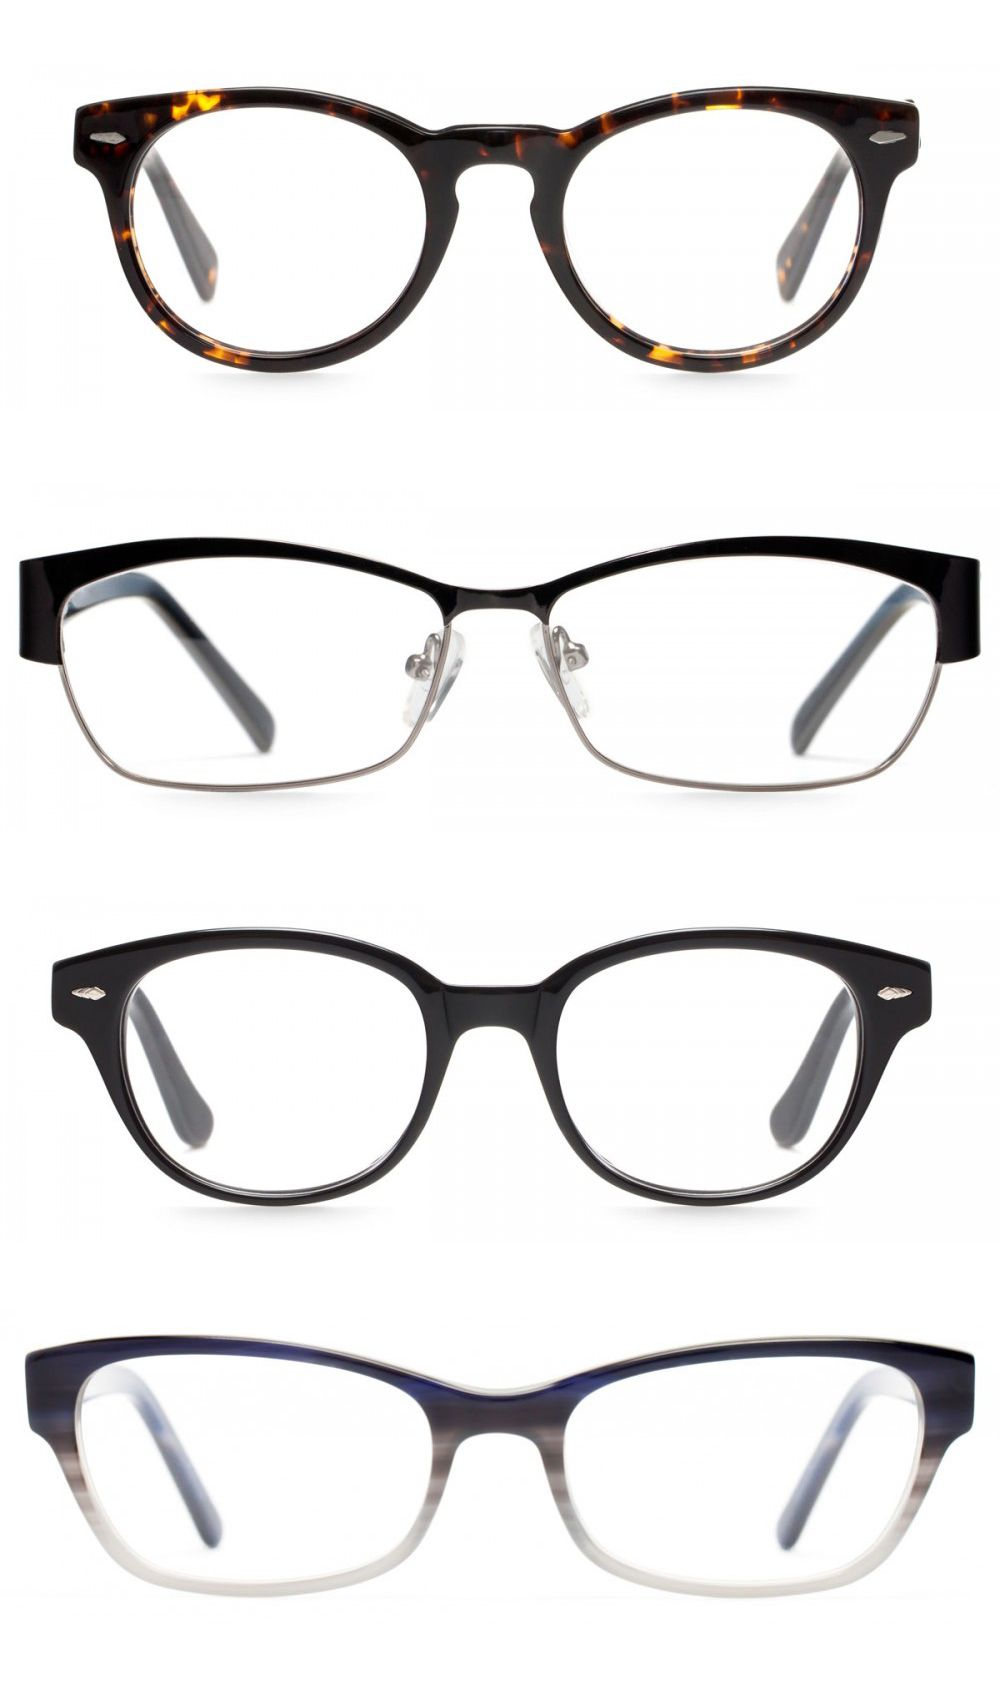 Glasses Frames Square Face : The perfect glasses for square faces felix + iris ...